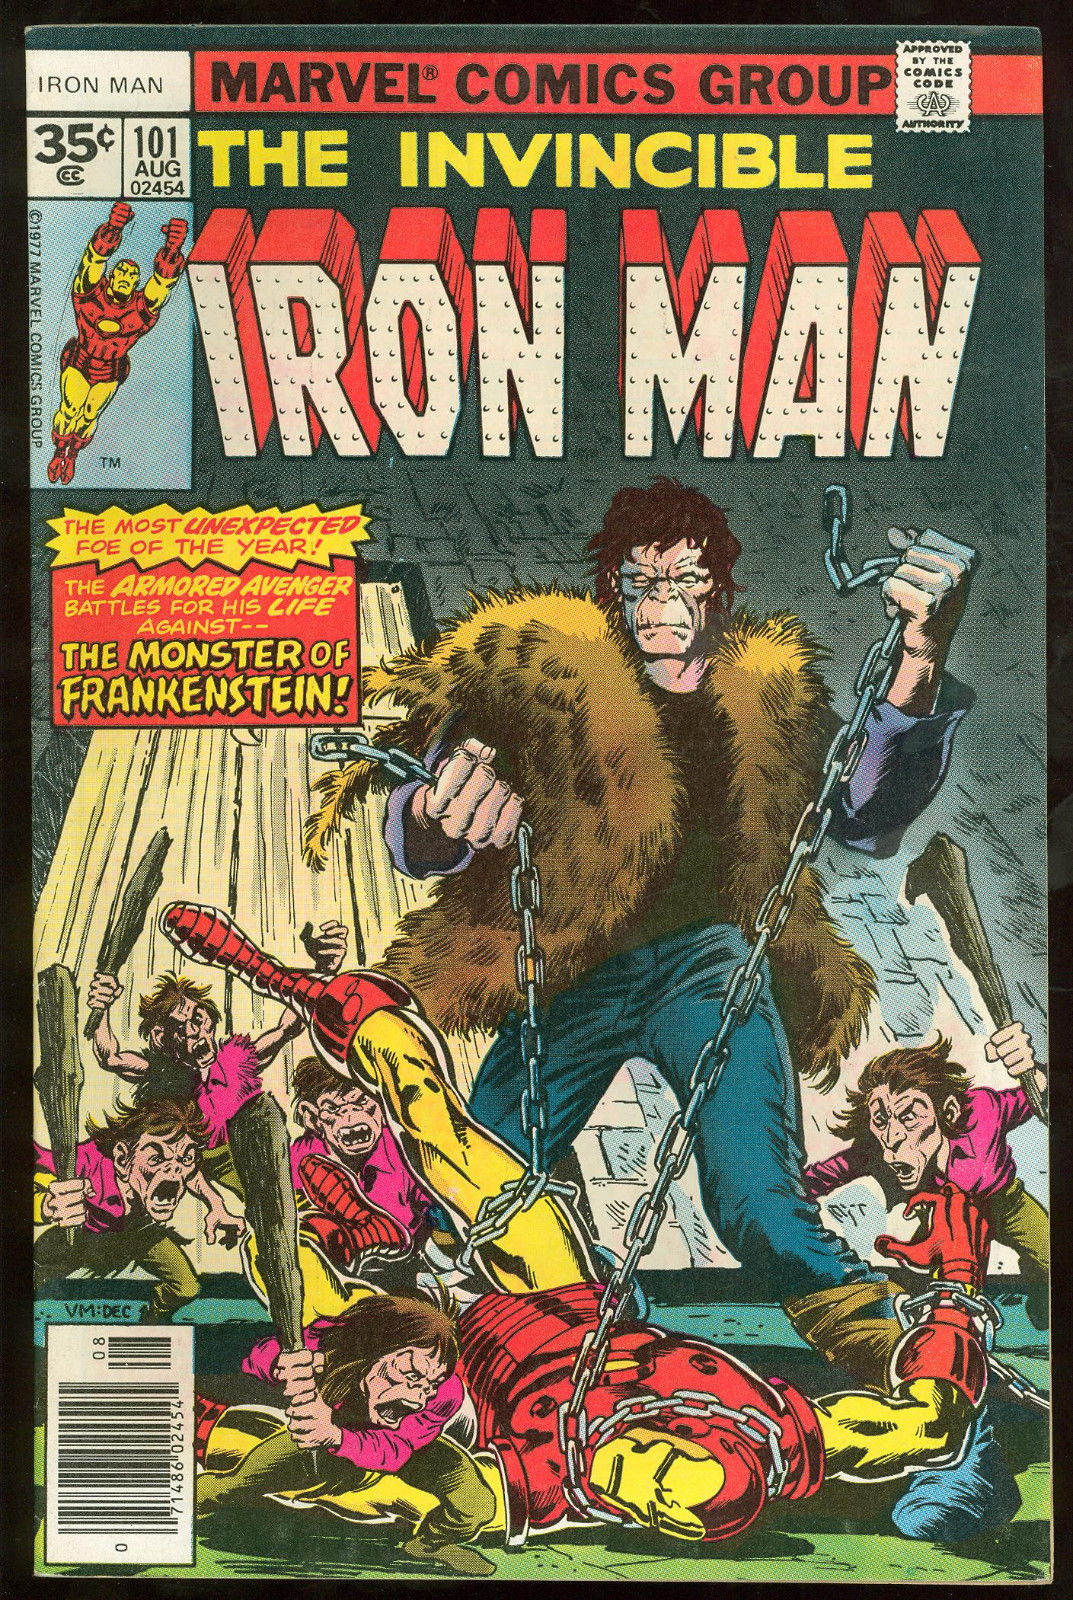 IRON MAN #101 RARE 35 CENT PRICE VARIANT .35 HIGHER GRADE